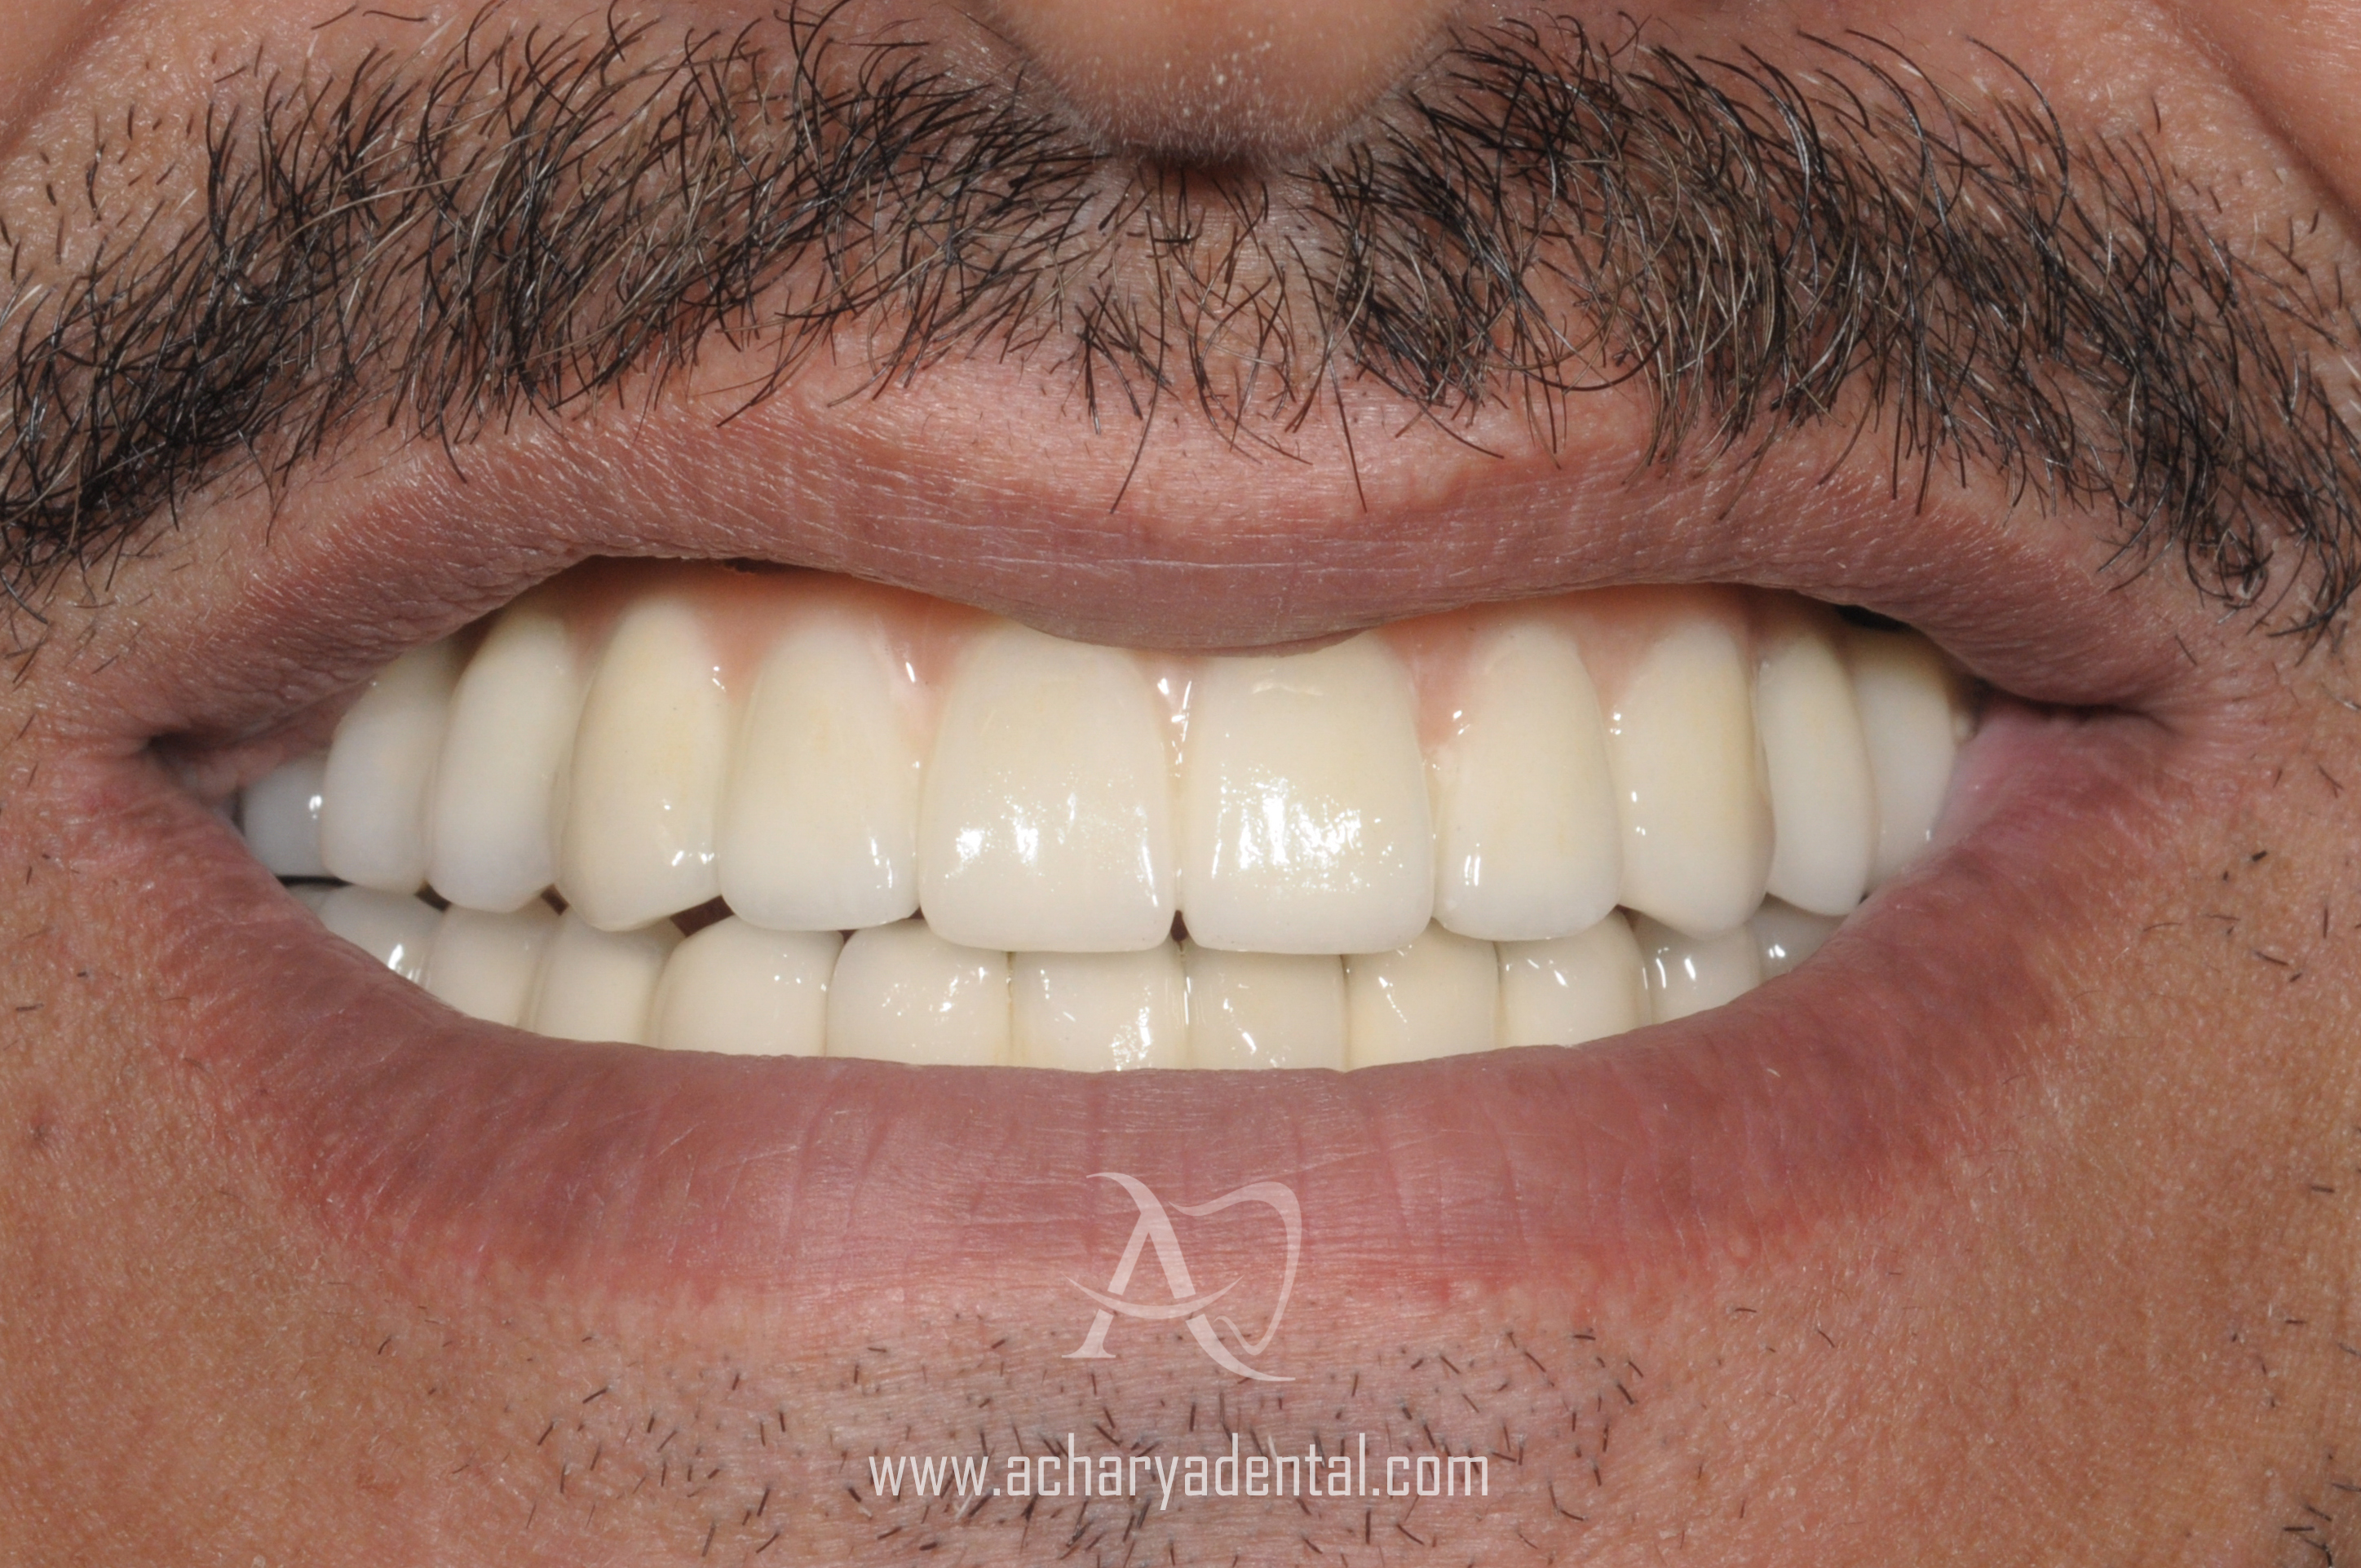 Dental Implants in Chennai, India | Best Dental Implant Cost